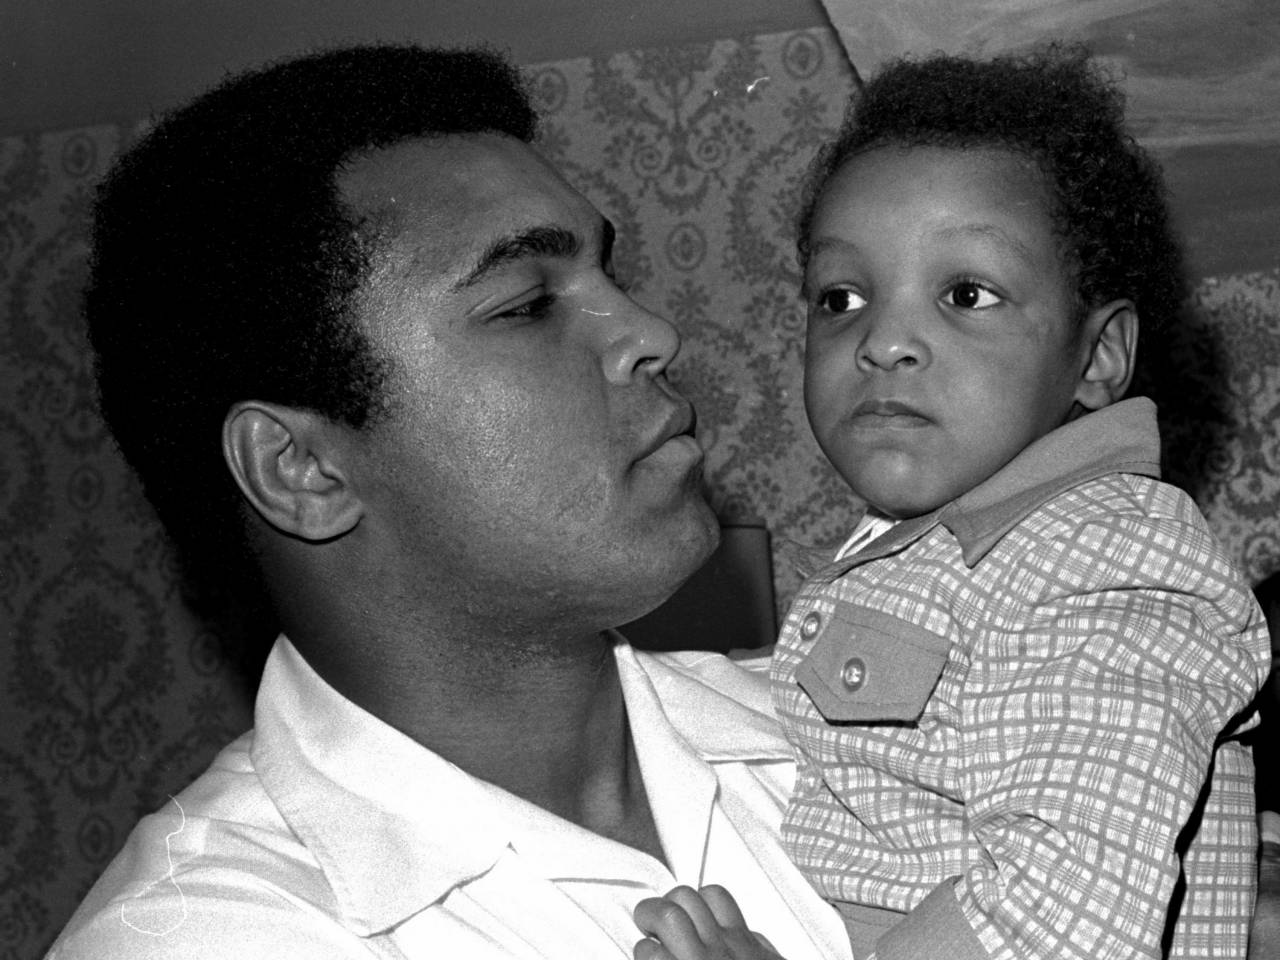 Muhammad Ali Jr on being detained at airport: 'I felt violated'